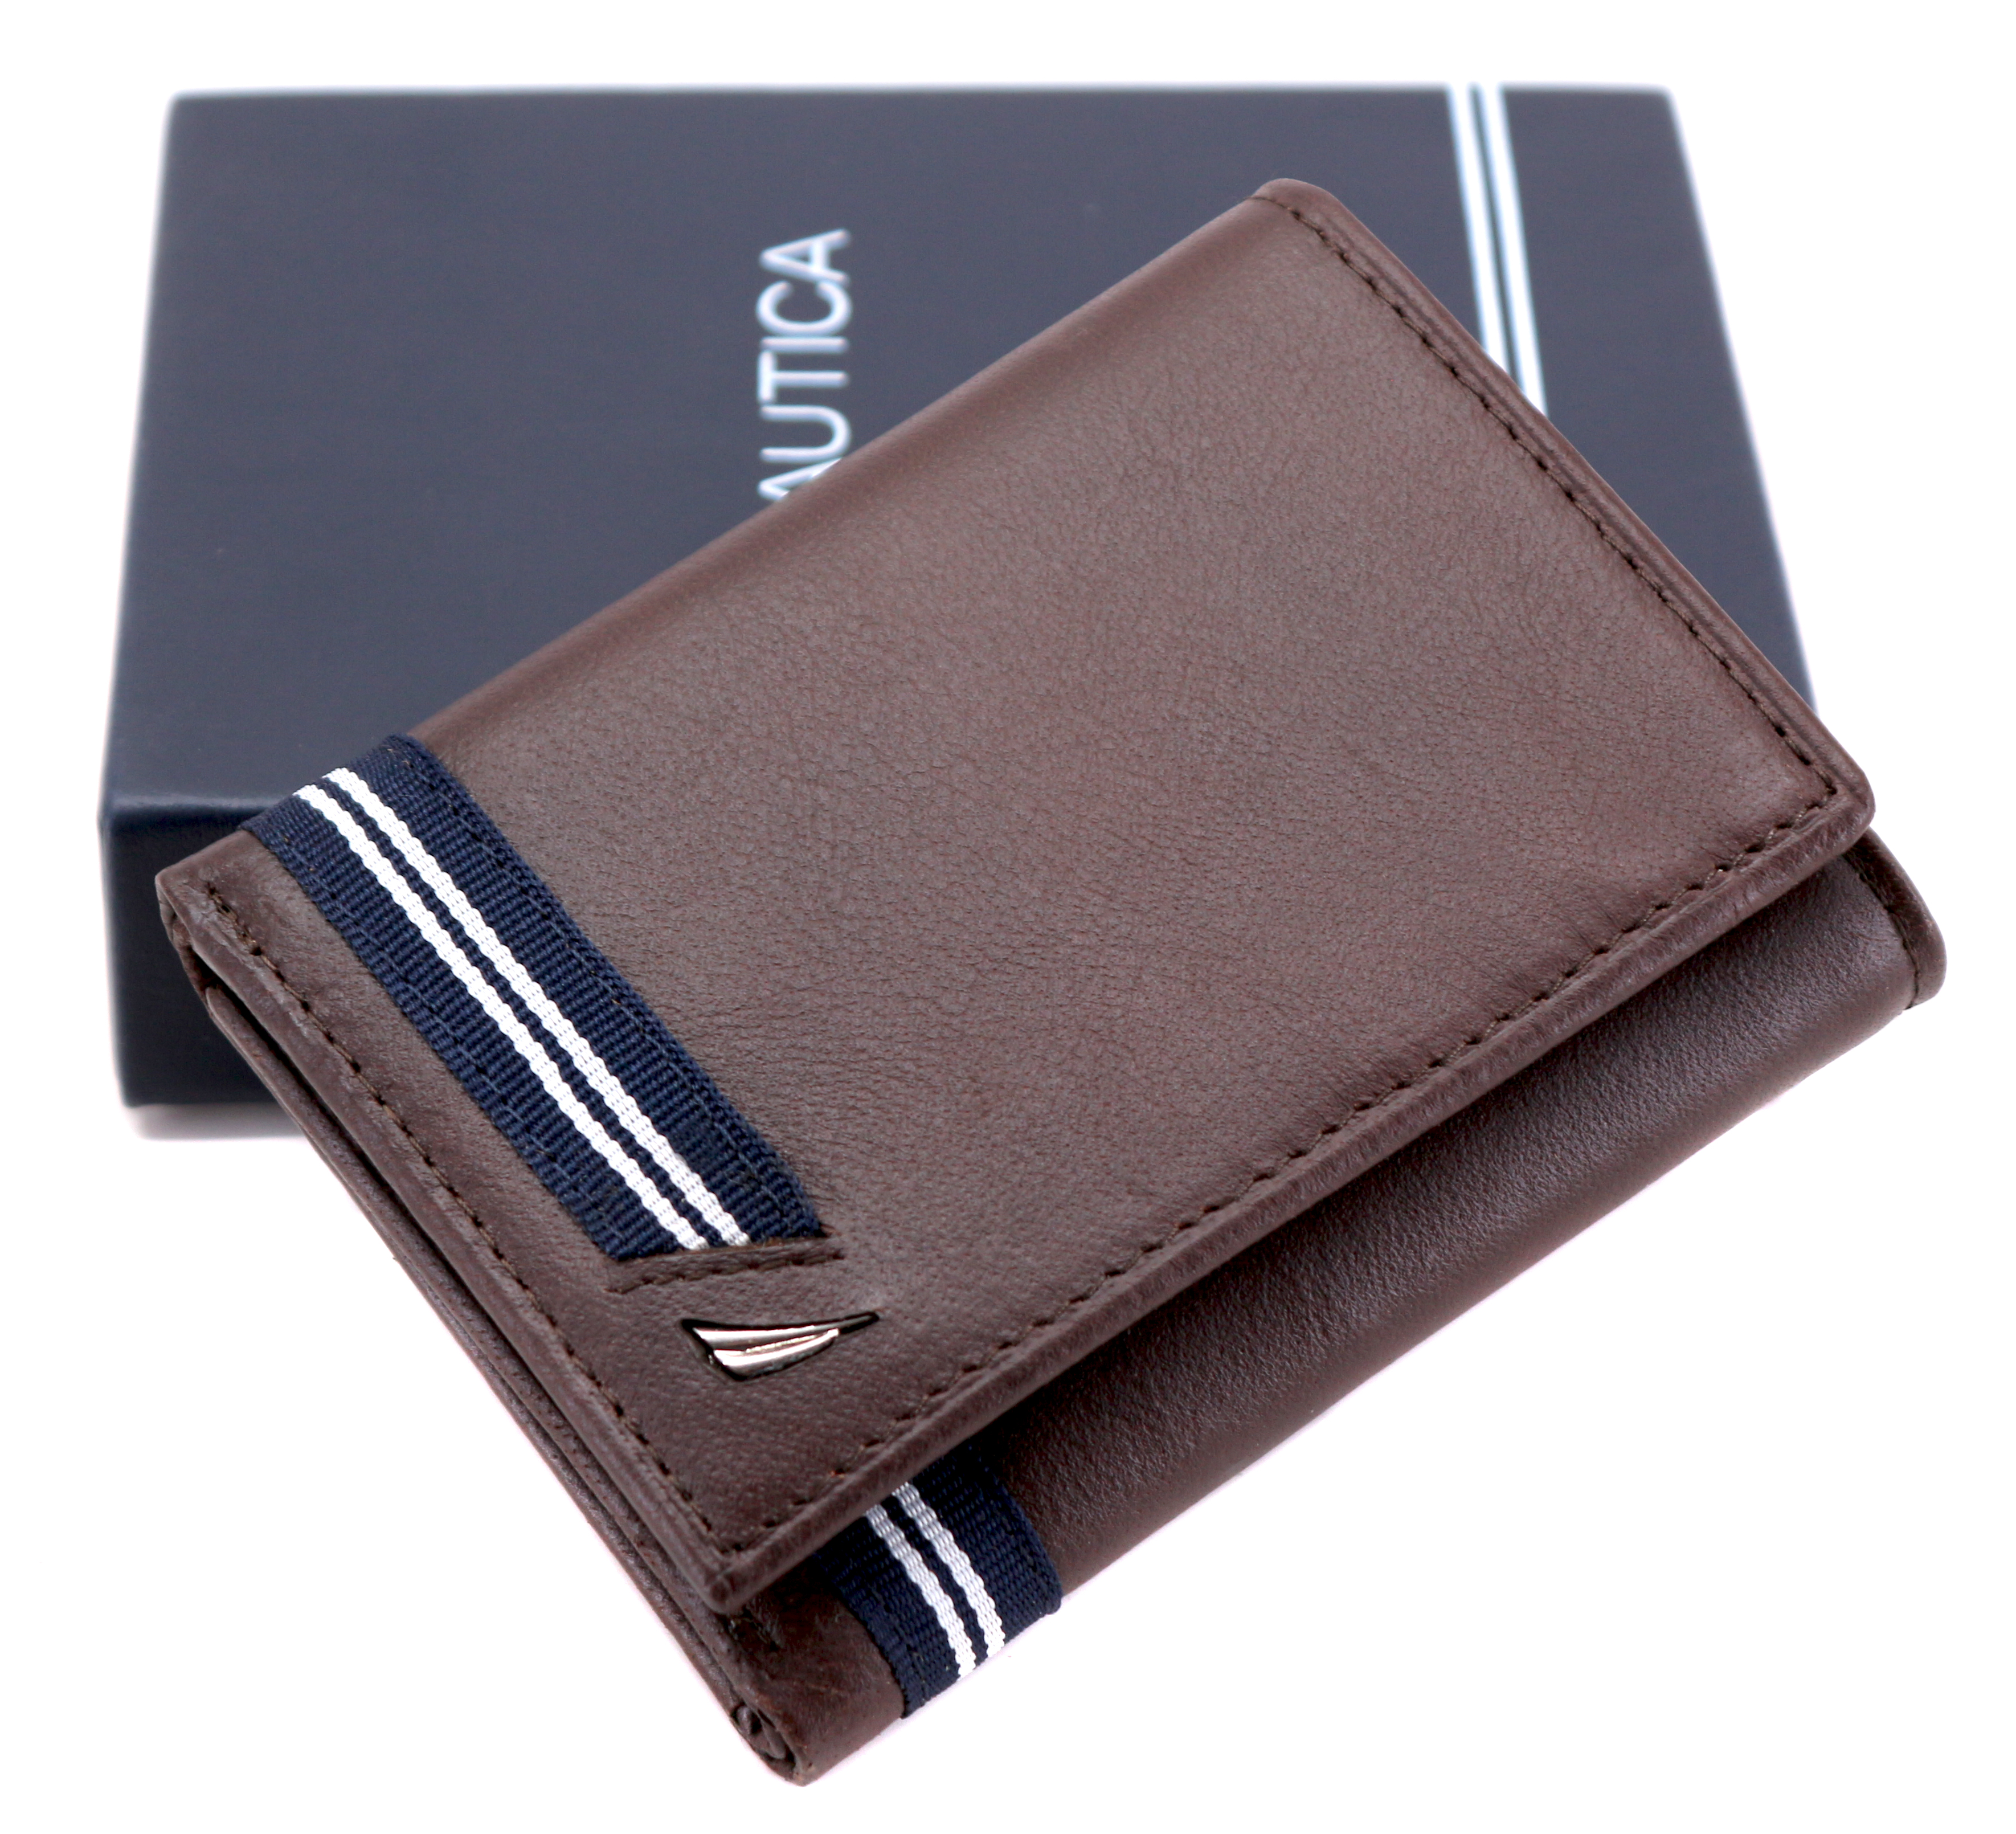 Nautica-Men-039-s-Genuine-Leather-Credit-Card-Id-Holder-Trifold-Wallet thumbnail 19